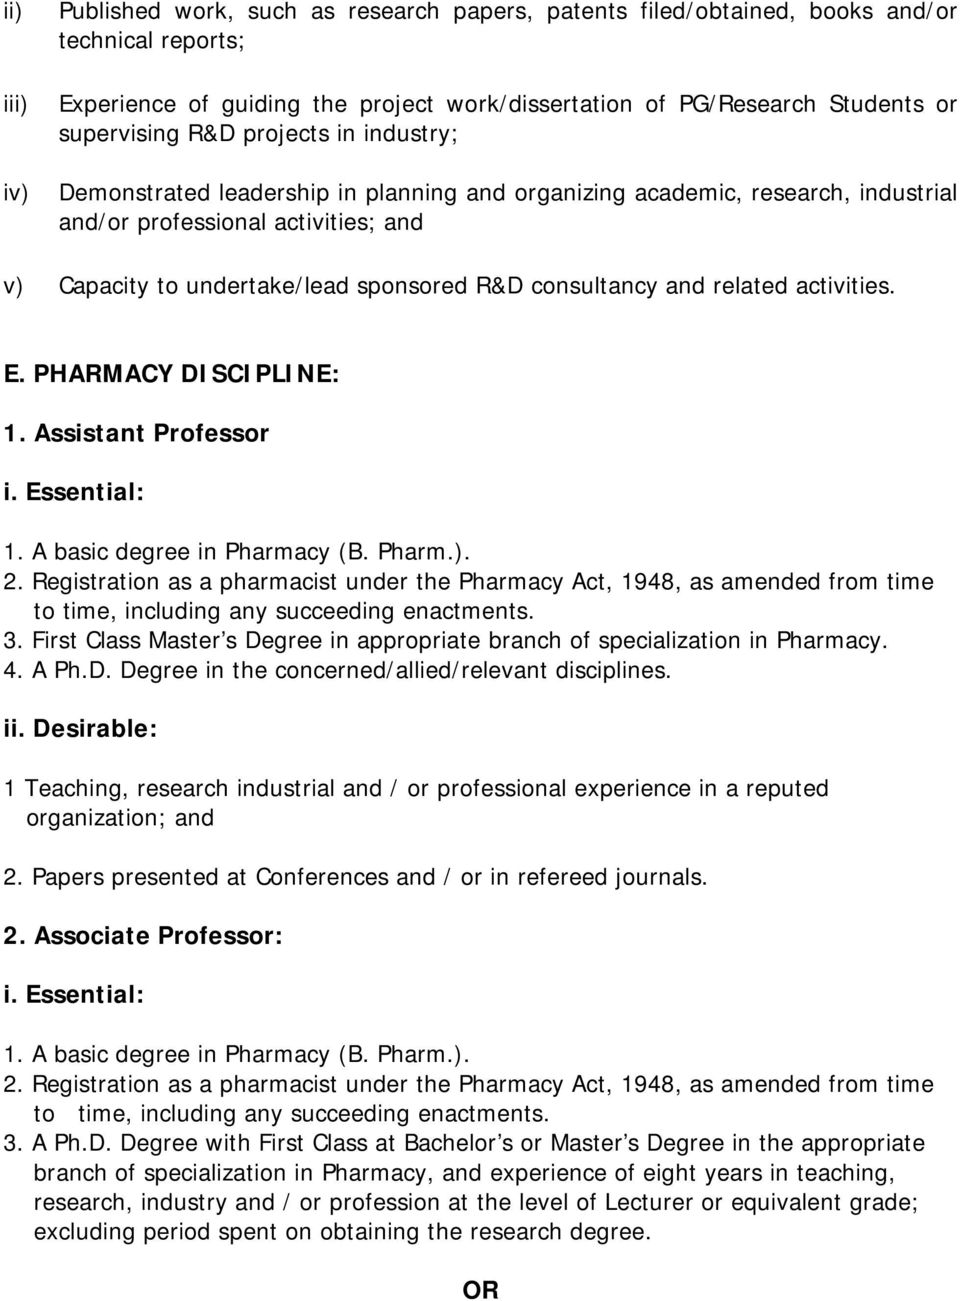 consultancy and related activities. E. PHARMACY DISCIPLINE: 1. Assistant Professor i. Essential: 1. A basic degree in Pharmacy (B. Pharm.). 2.